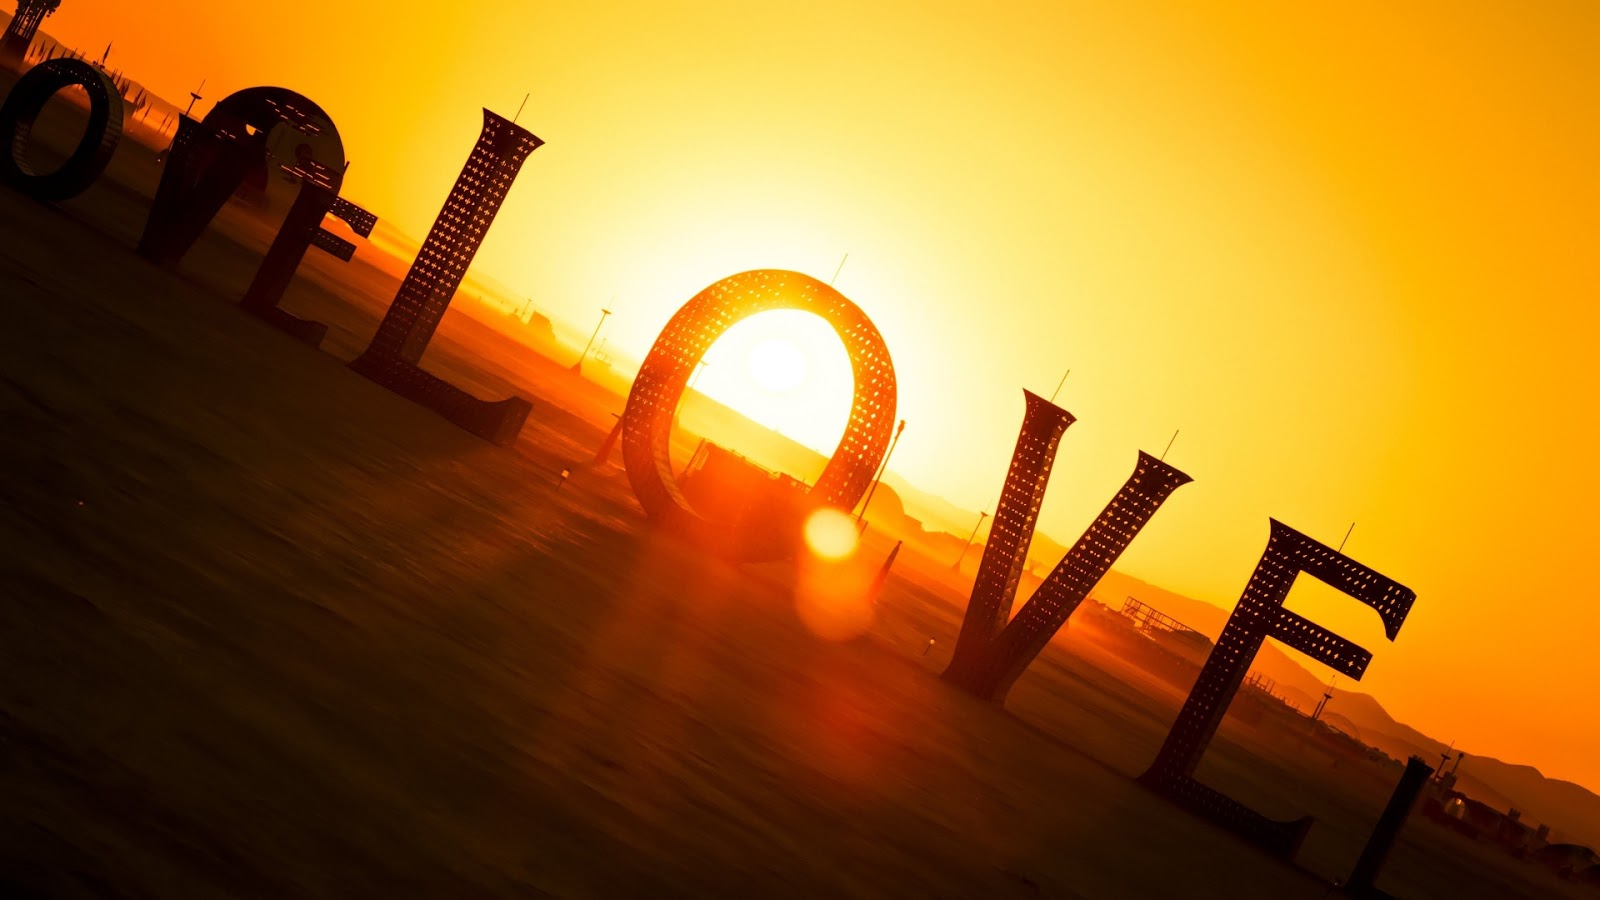 Sunset Love 1920x1080 Wallpaper